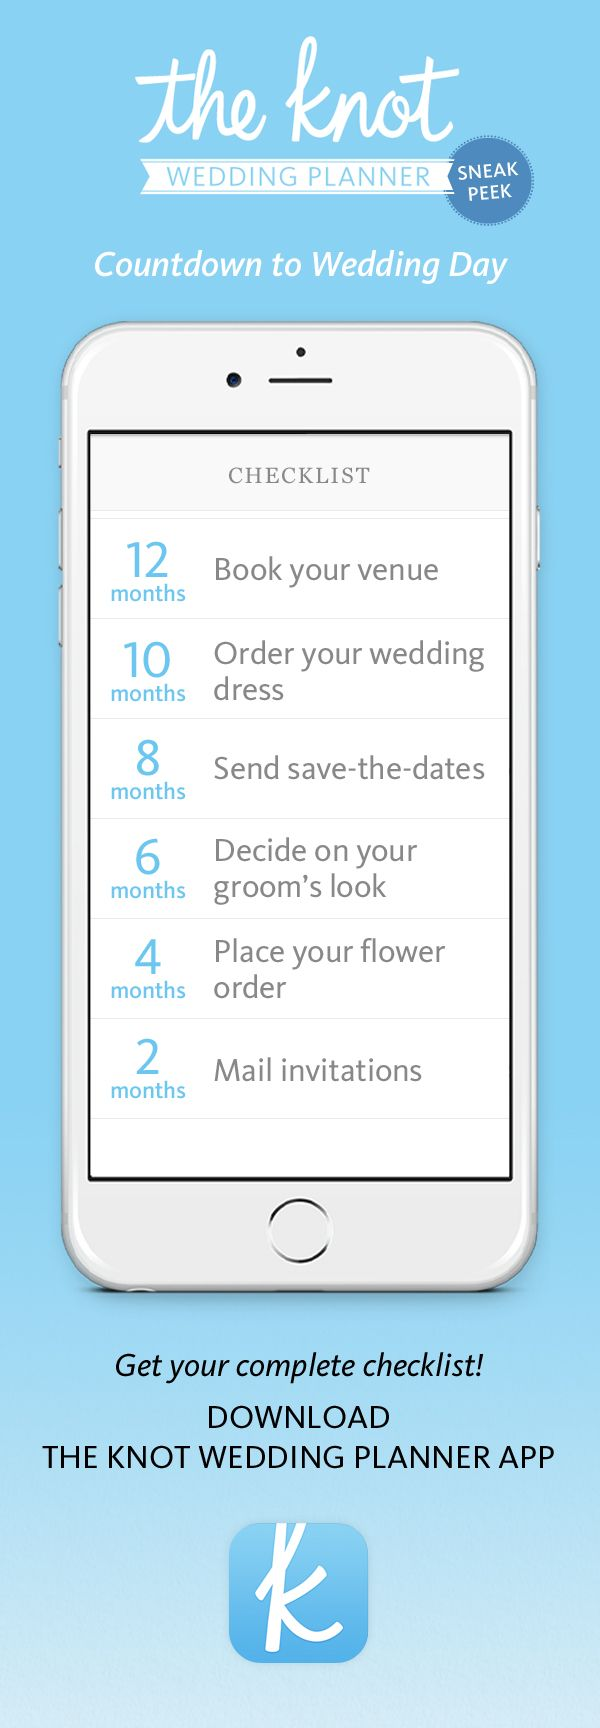 While you're counting down the days to your wedding, make sure you don't miss any details! Check out The Knot's Planner App - a one stop shop for all wedding planning tools you need!